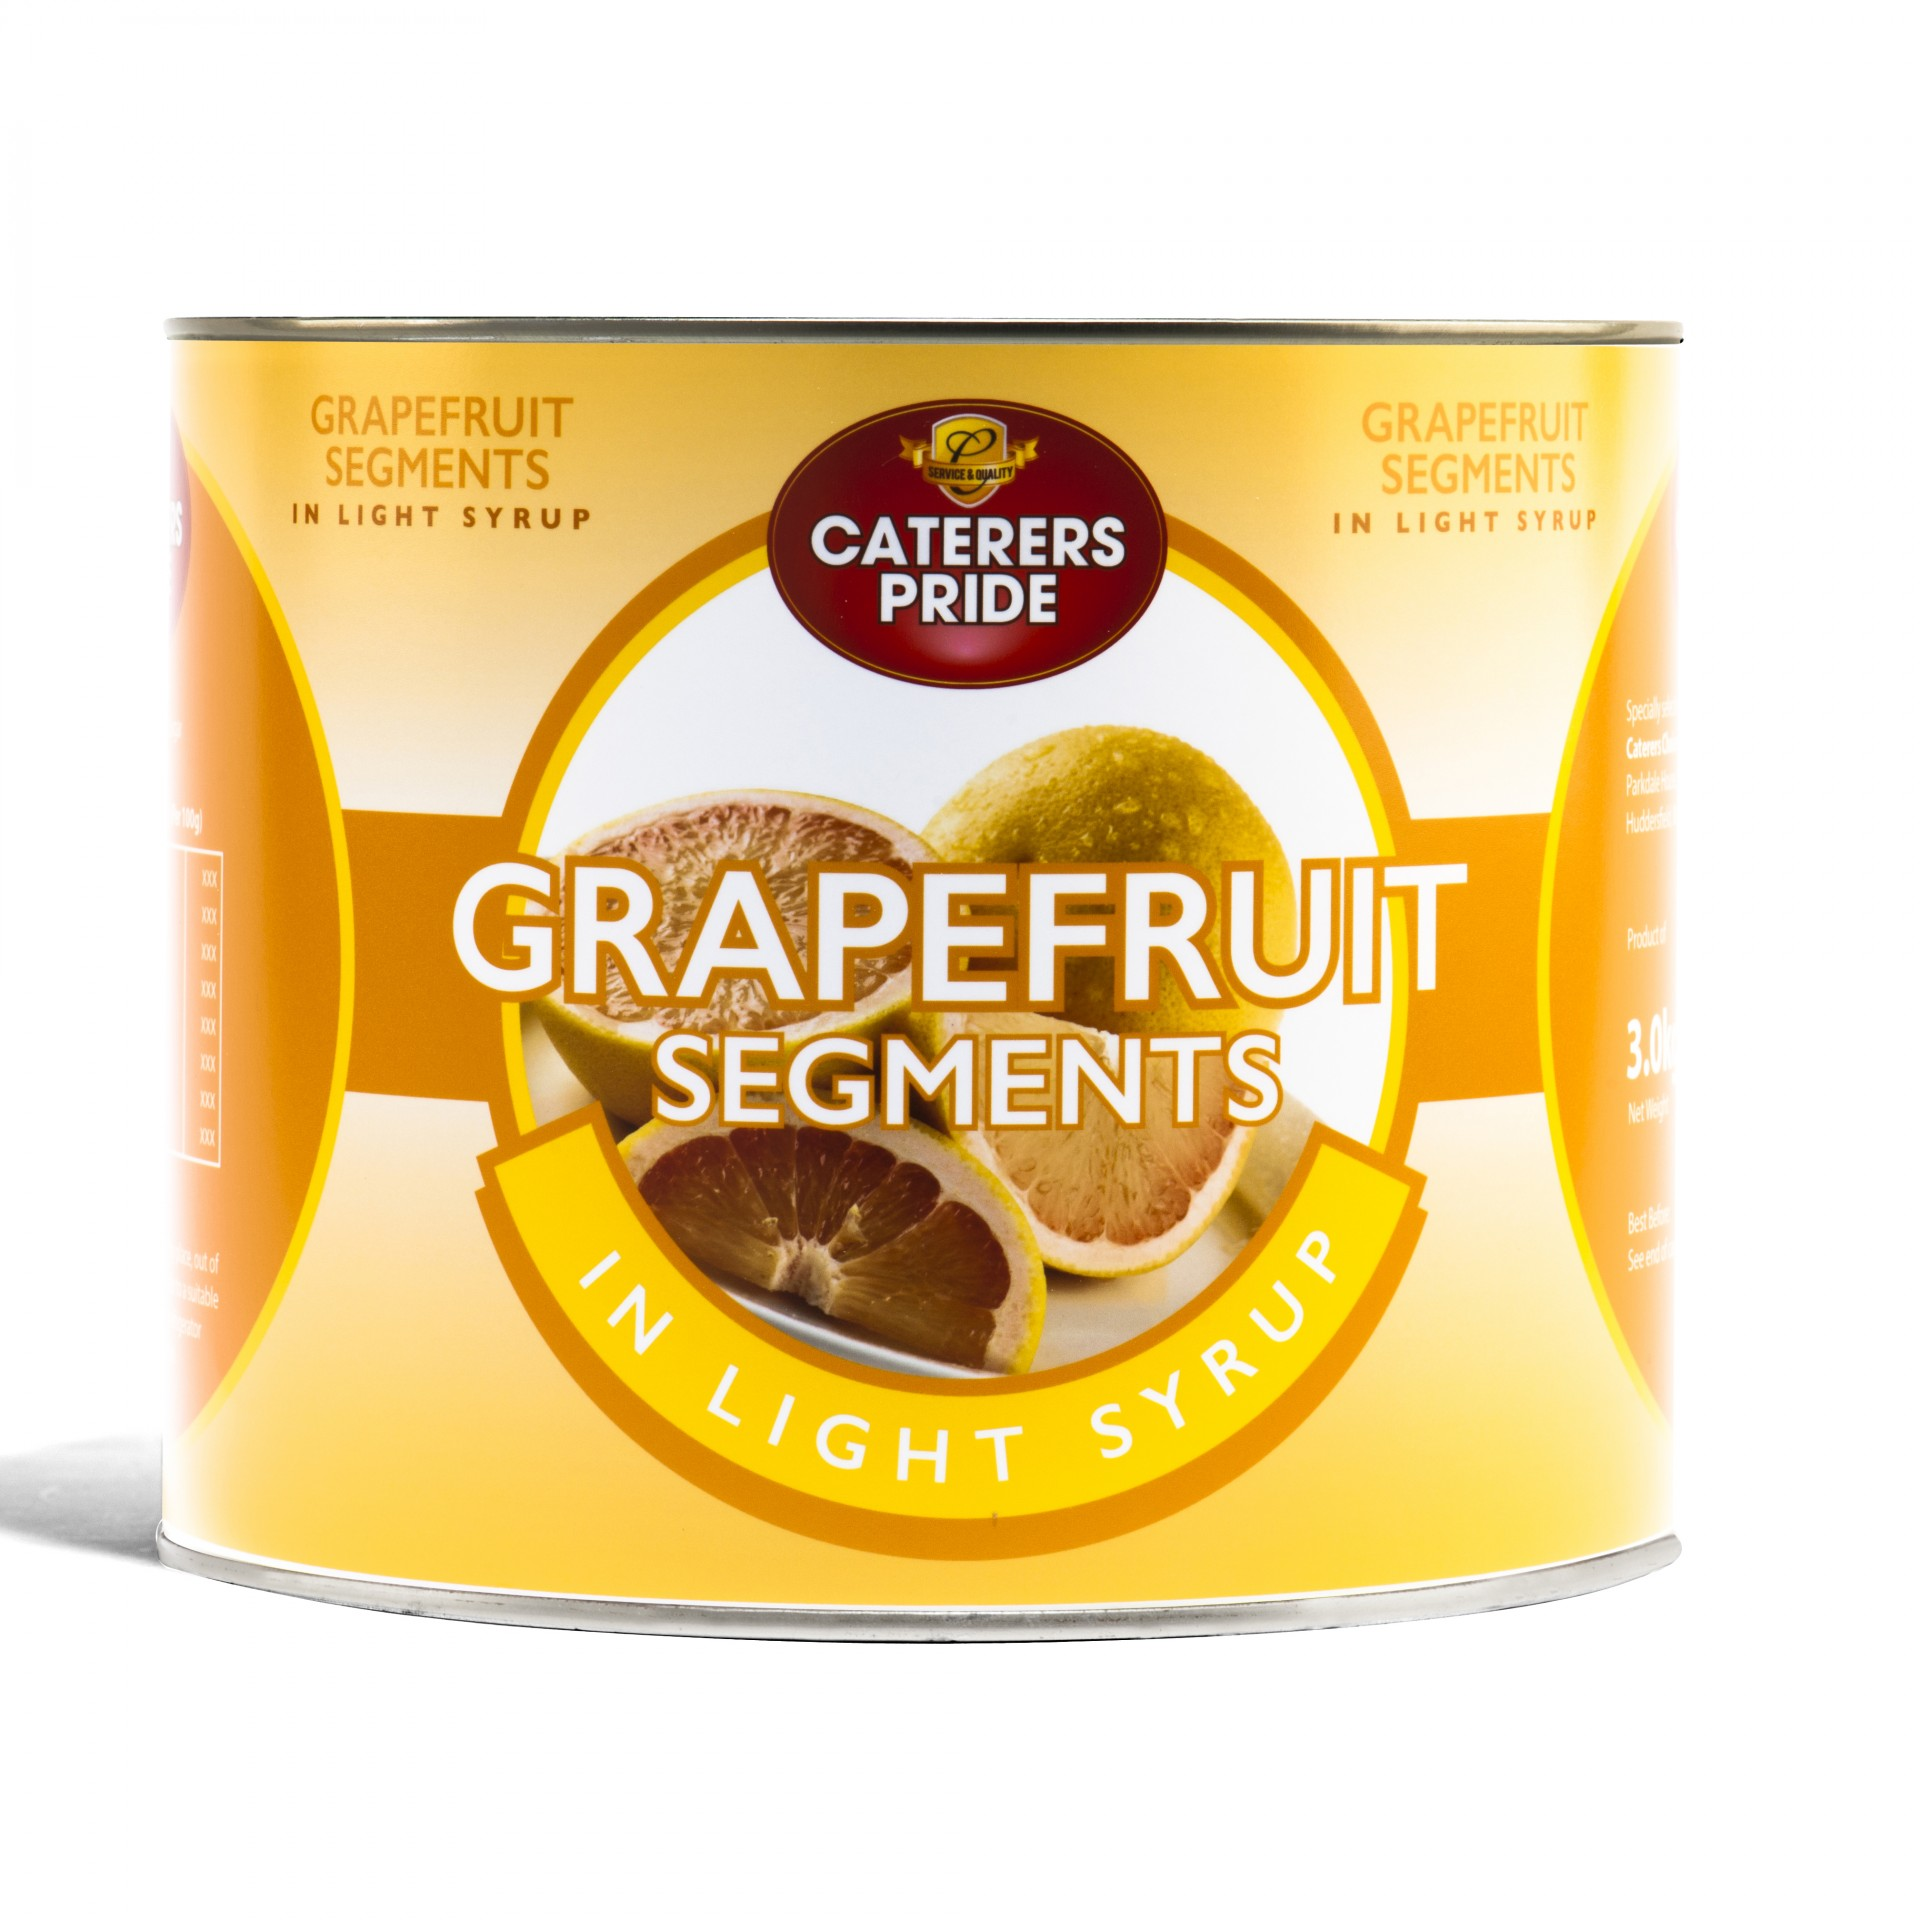 Grapefruit Segments in Syrup